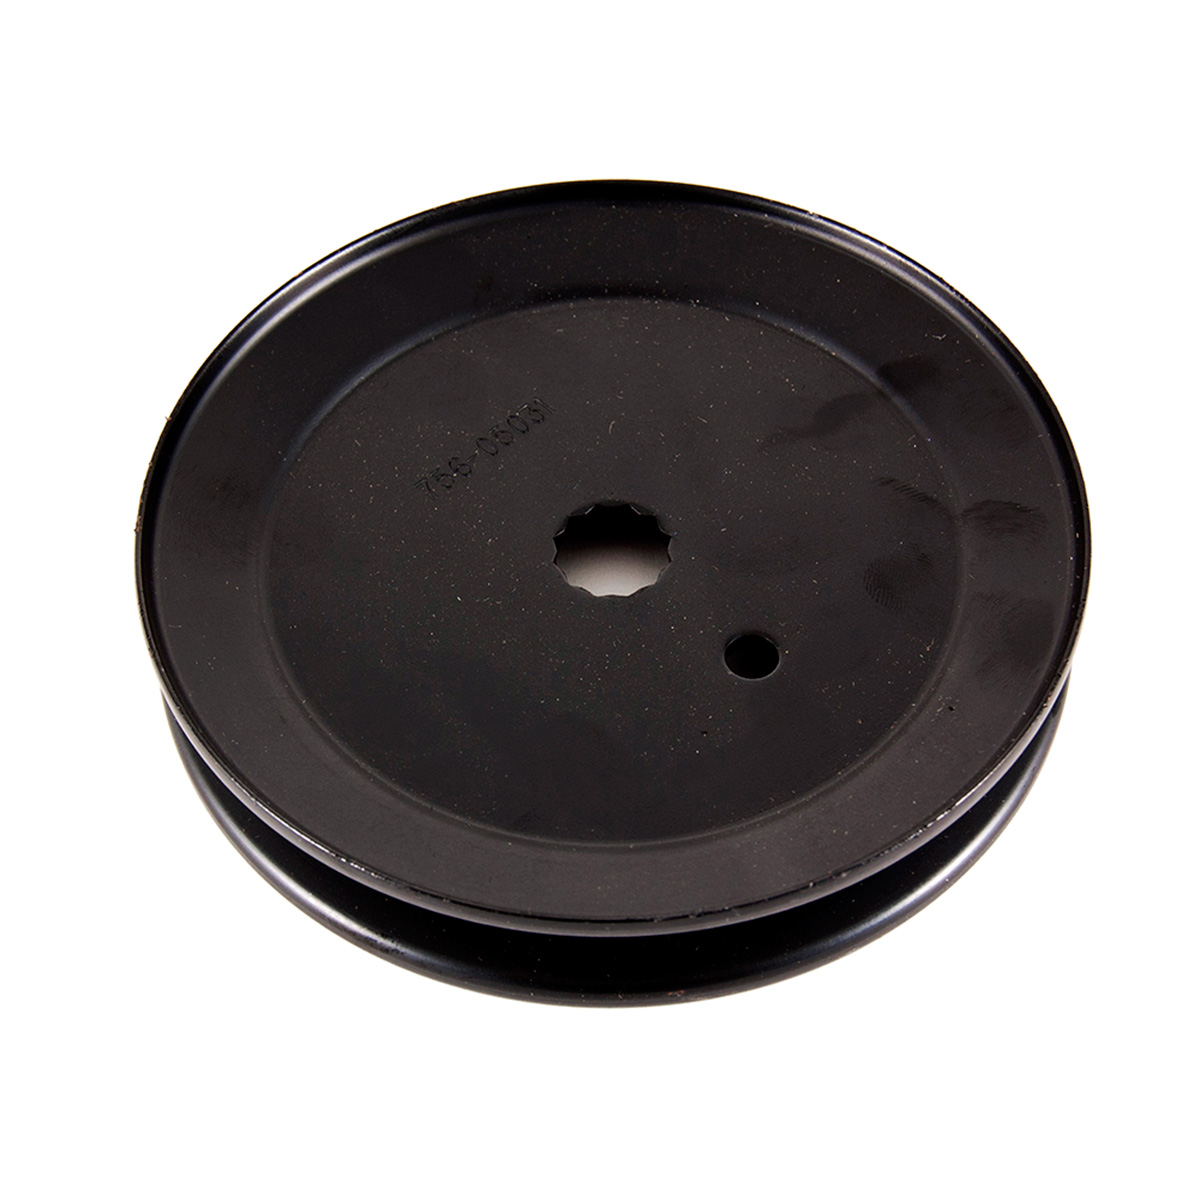 Pulley-Deck 5.4 inch D 756-05031